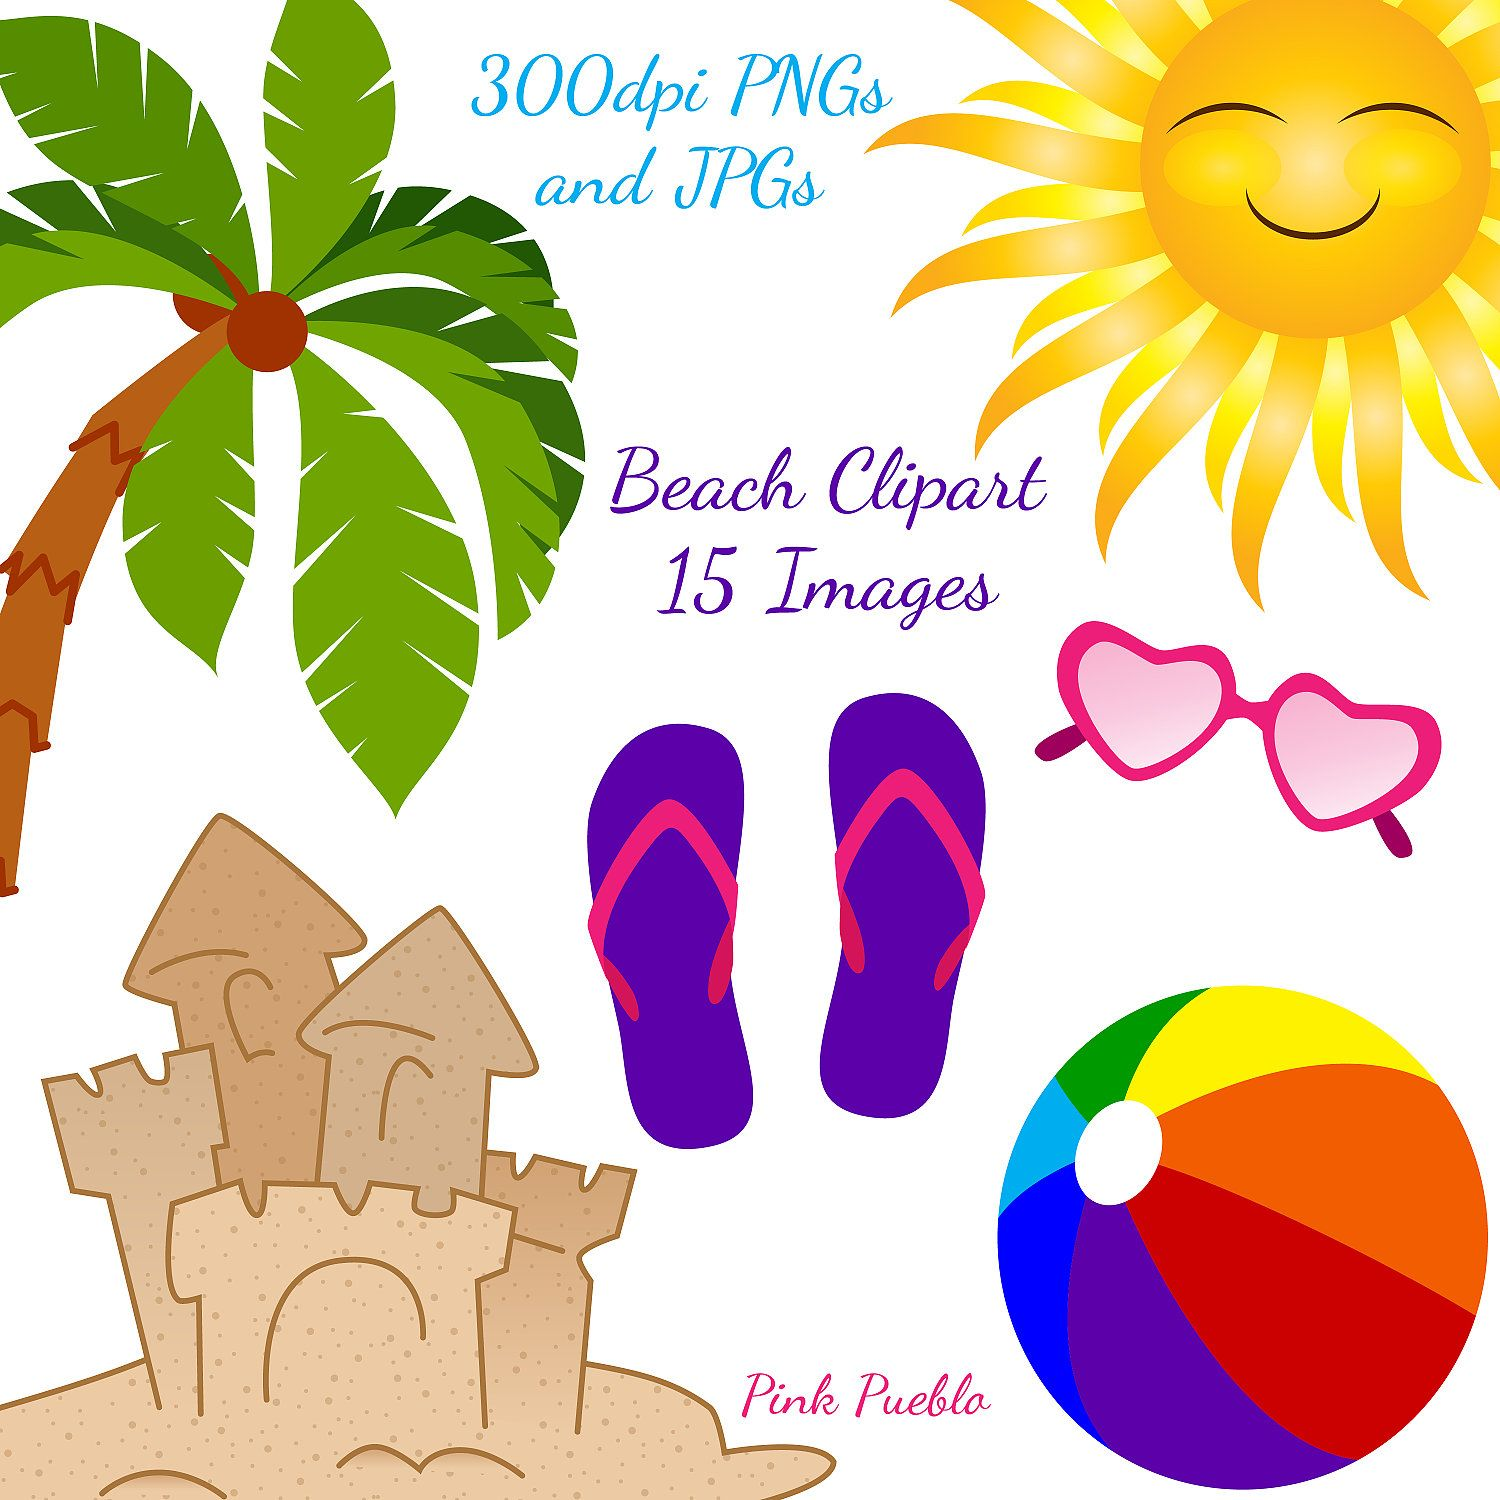 beach clipart clip art ocean summer vacation clipart clip art commercial and personal use 6 00 via etsy  [ 1500 x 1500 Pixel ]